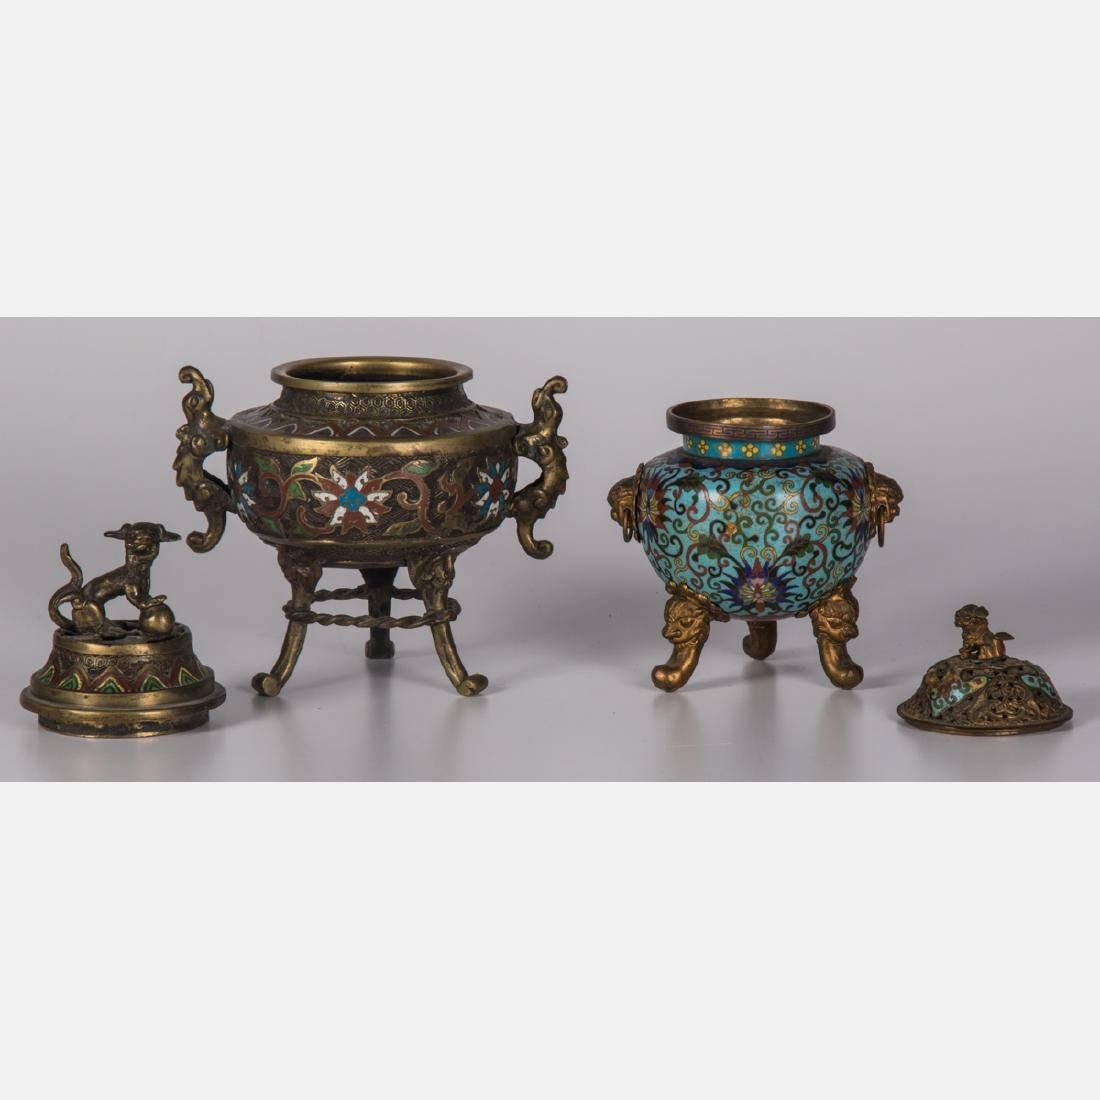 Two Chinese Brass and Cloisonné Censers, 19th/20th - 2